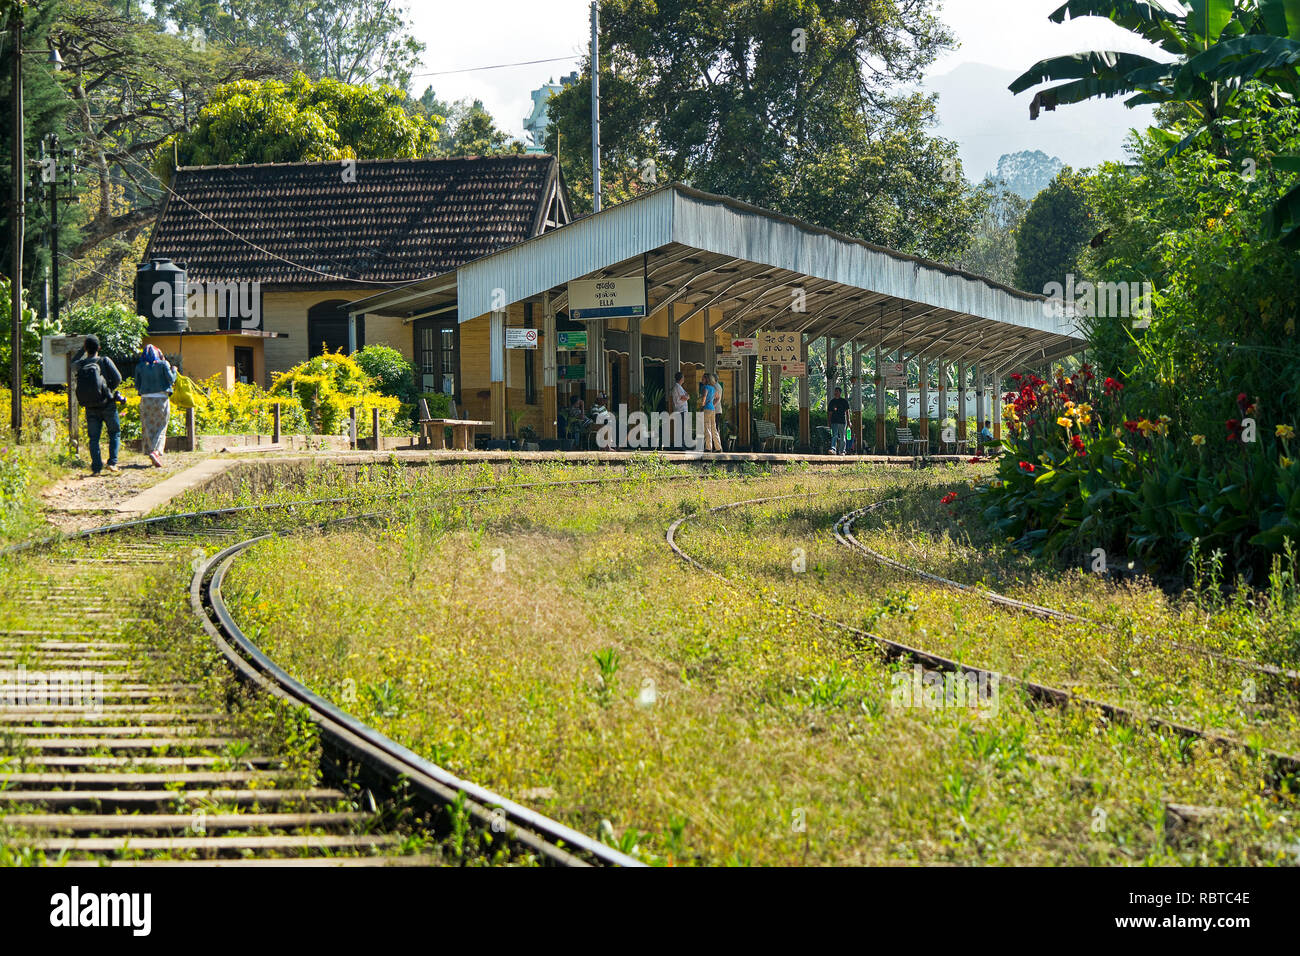 The picturesquely situated Ella Railway Station. The start of the popular tourist train trip of Ella to Kandy. - Stock Image